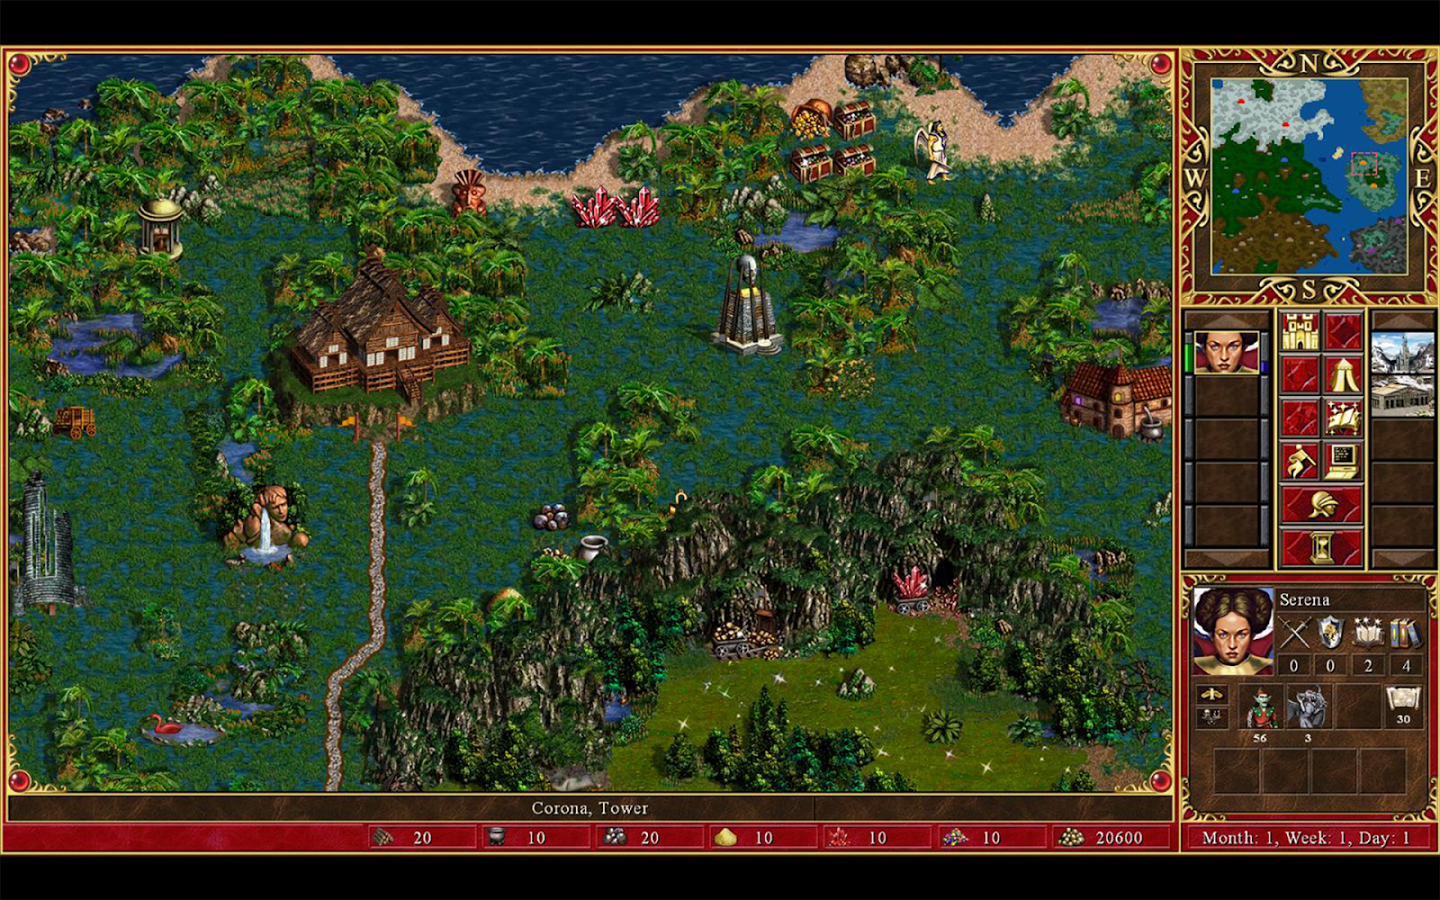 Heroes Of Might And Magic III Backgrounds, Compatible - PC, Mobile, Gadgets| 1440x900 px